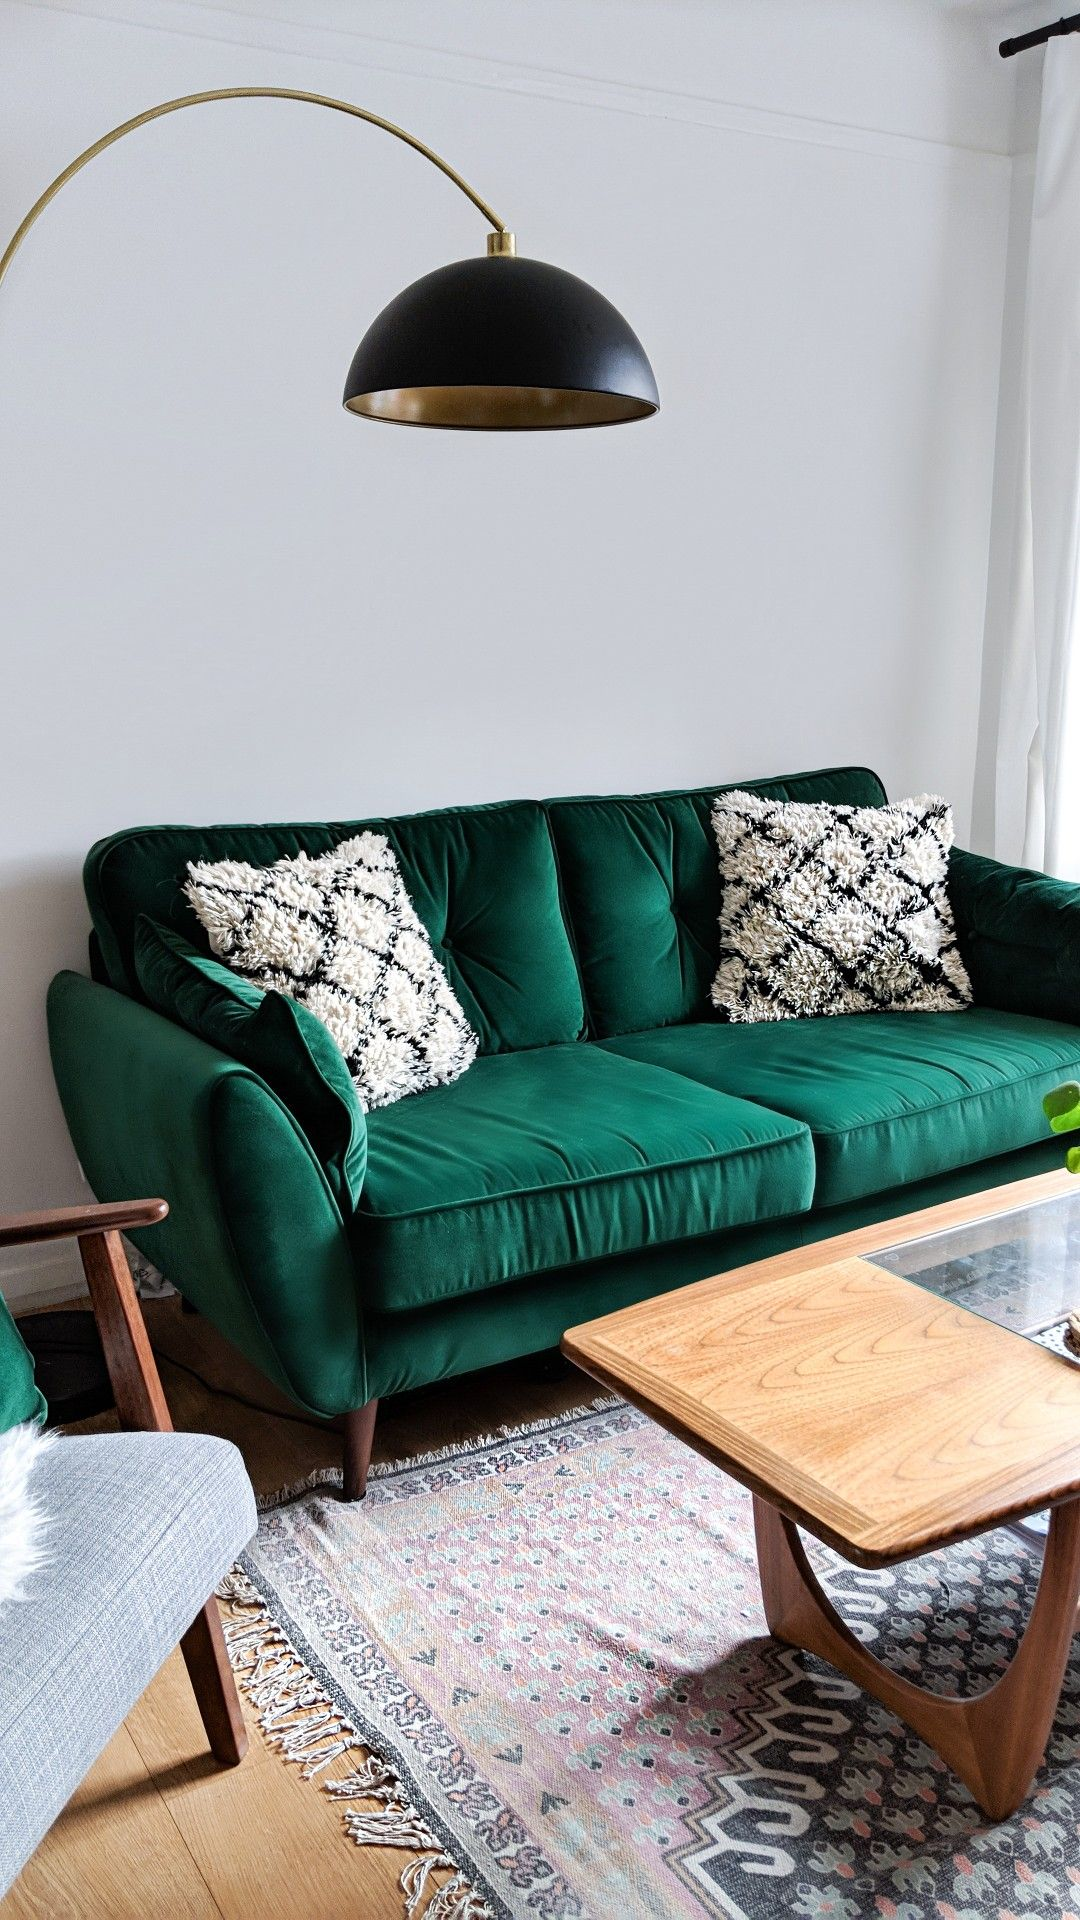 dfs vine sofa review leather repair kit reviews mid century living room styled with key pieces from french connection including their signature zinc in velvet green and pink cotton poppy rug